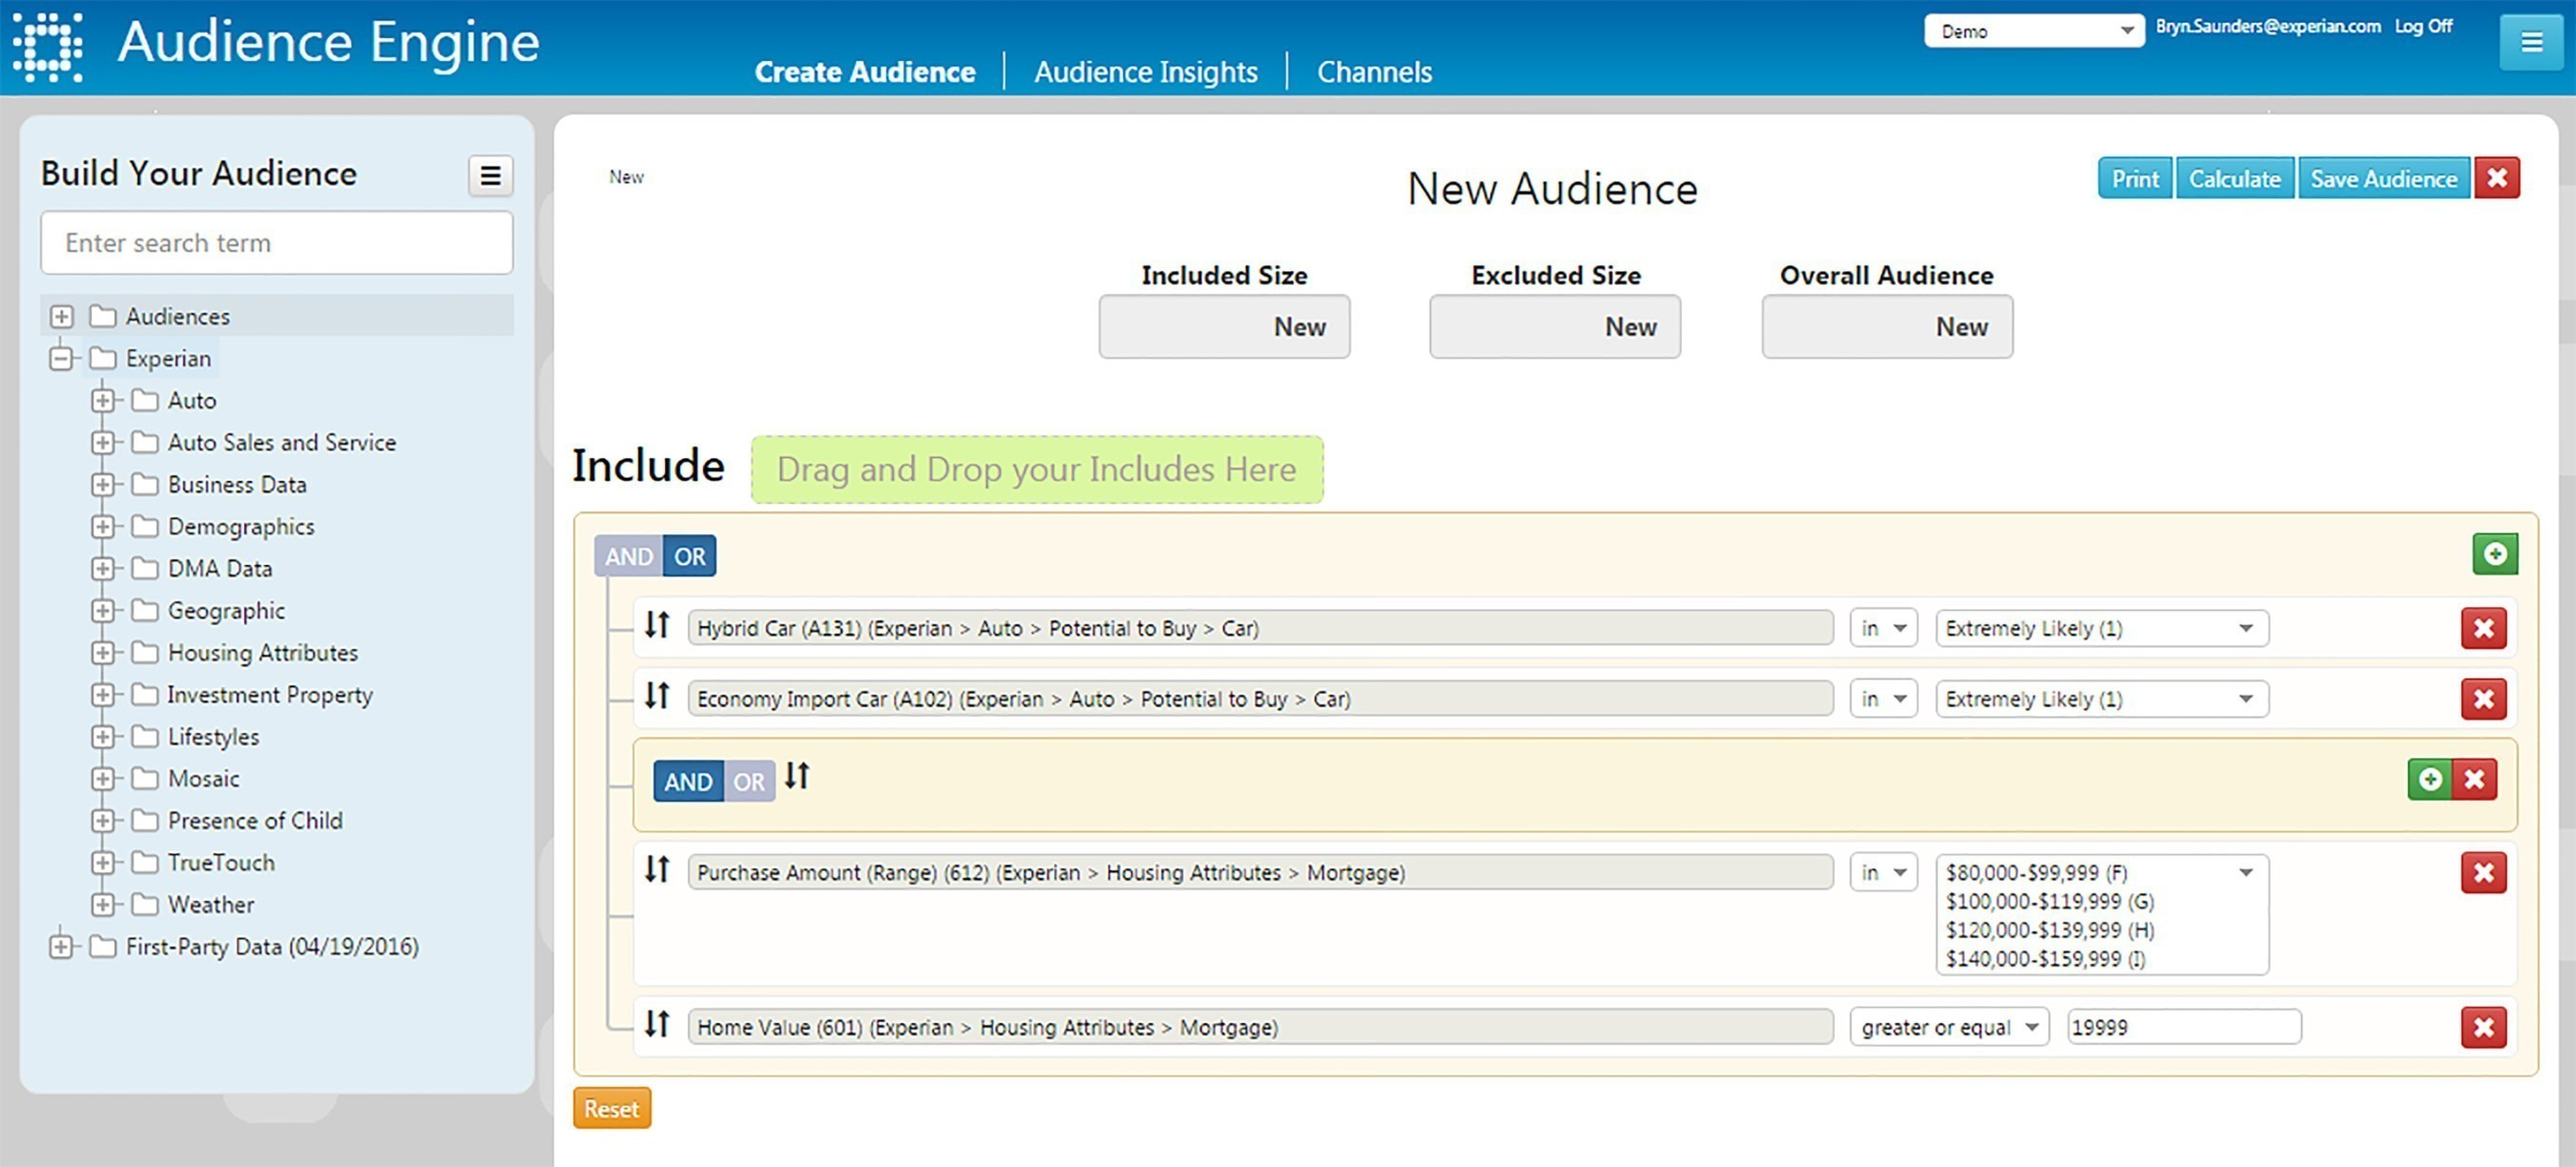 Directly in Experian's new audience management platform, Audience Engine, users are able to create custom audiences by selecting from their customer files and Experian's consumer marketing database (the largest in the world), as well as segments from other unique, emerging data sources. Users see the quantity and scale of the target audience immediately and can export the file within minutes.